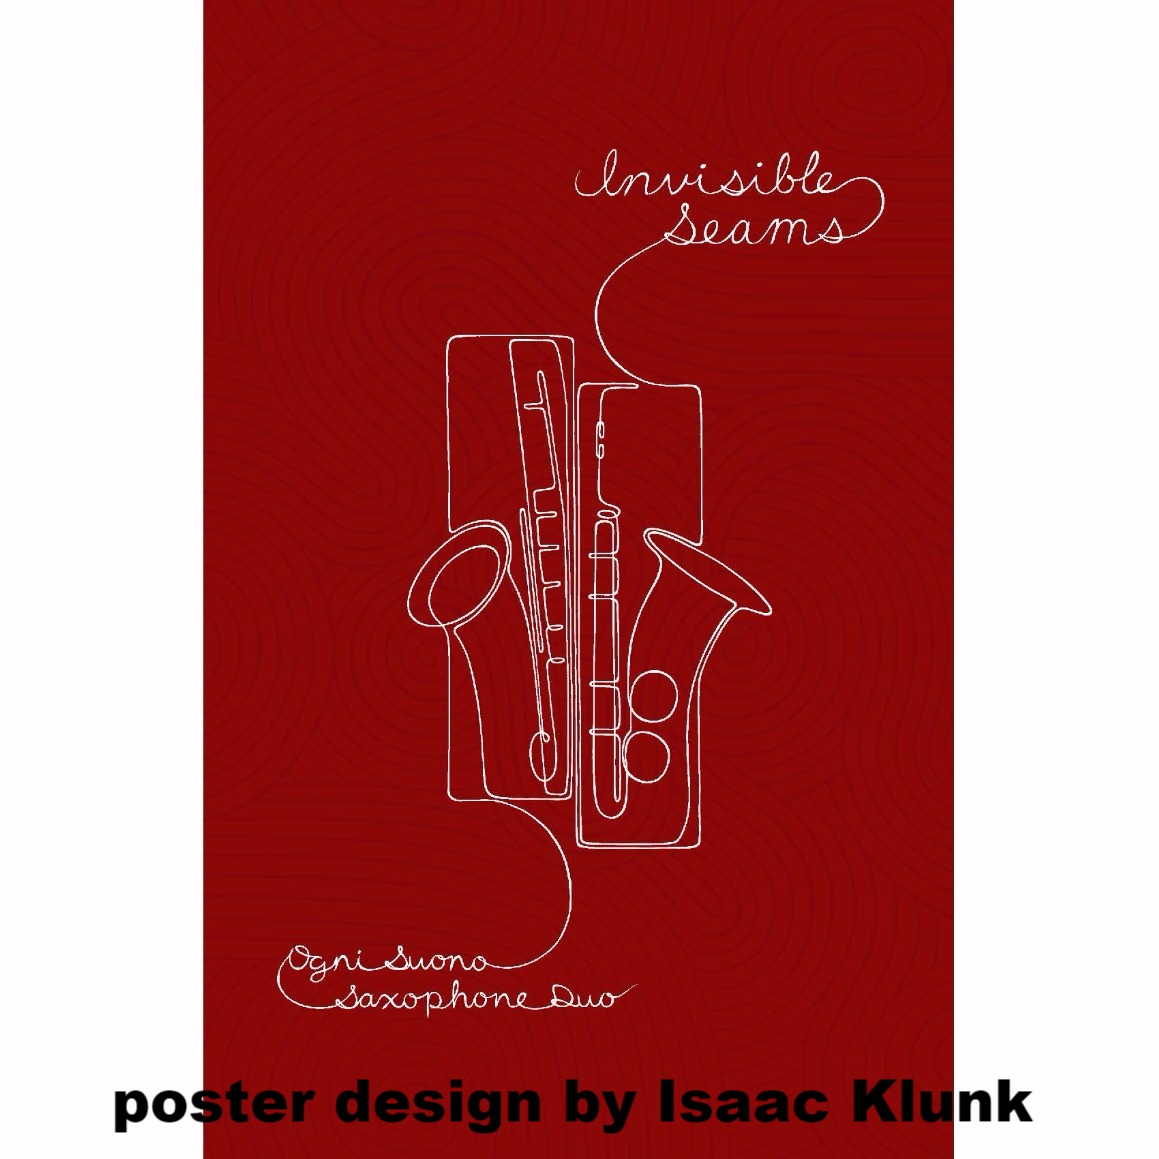 Invisible Seams Poster - $5.00